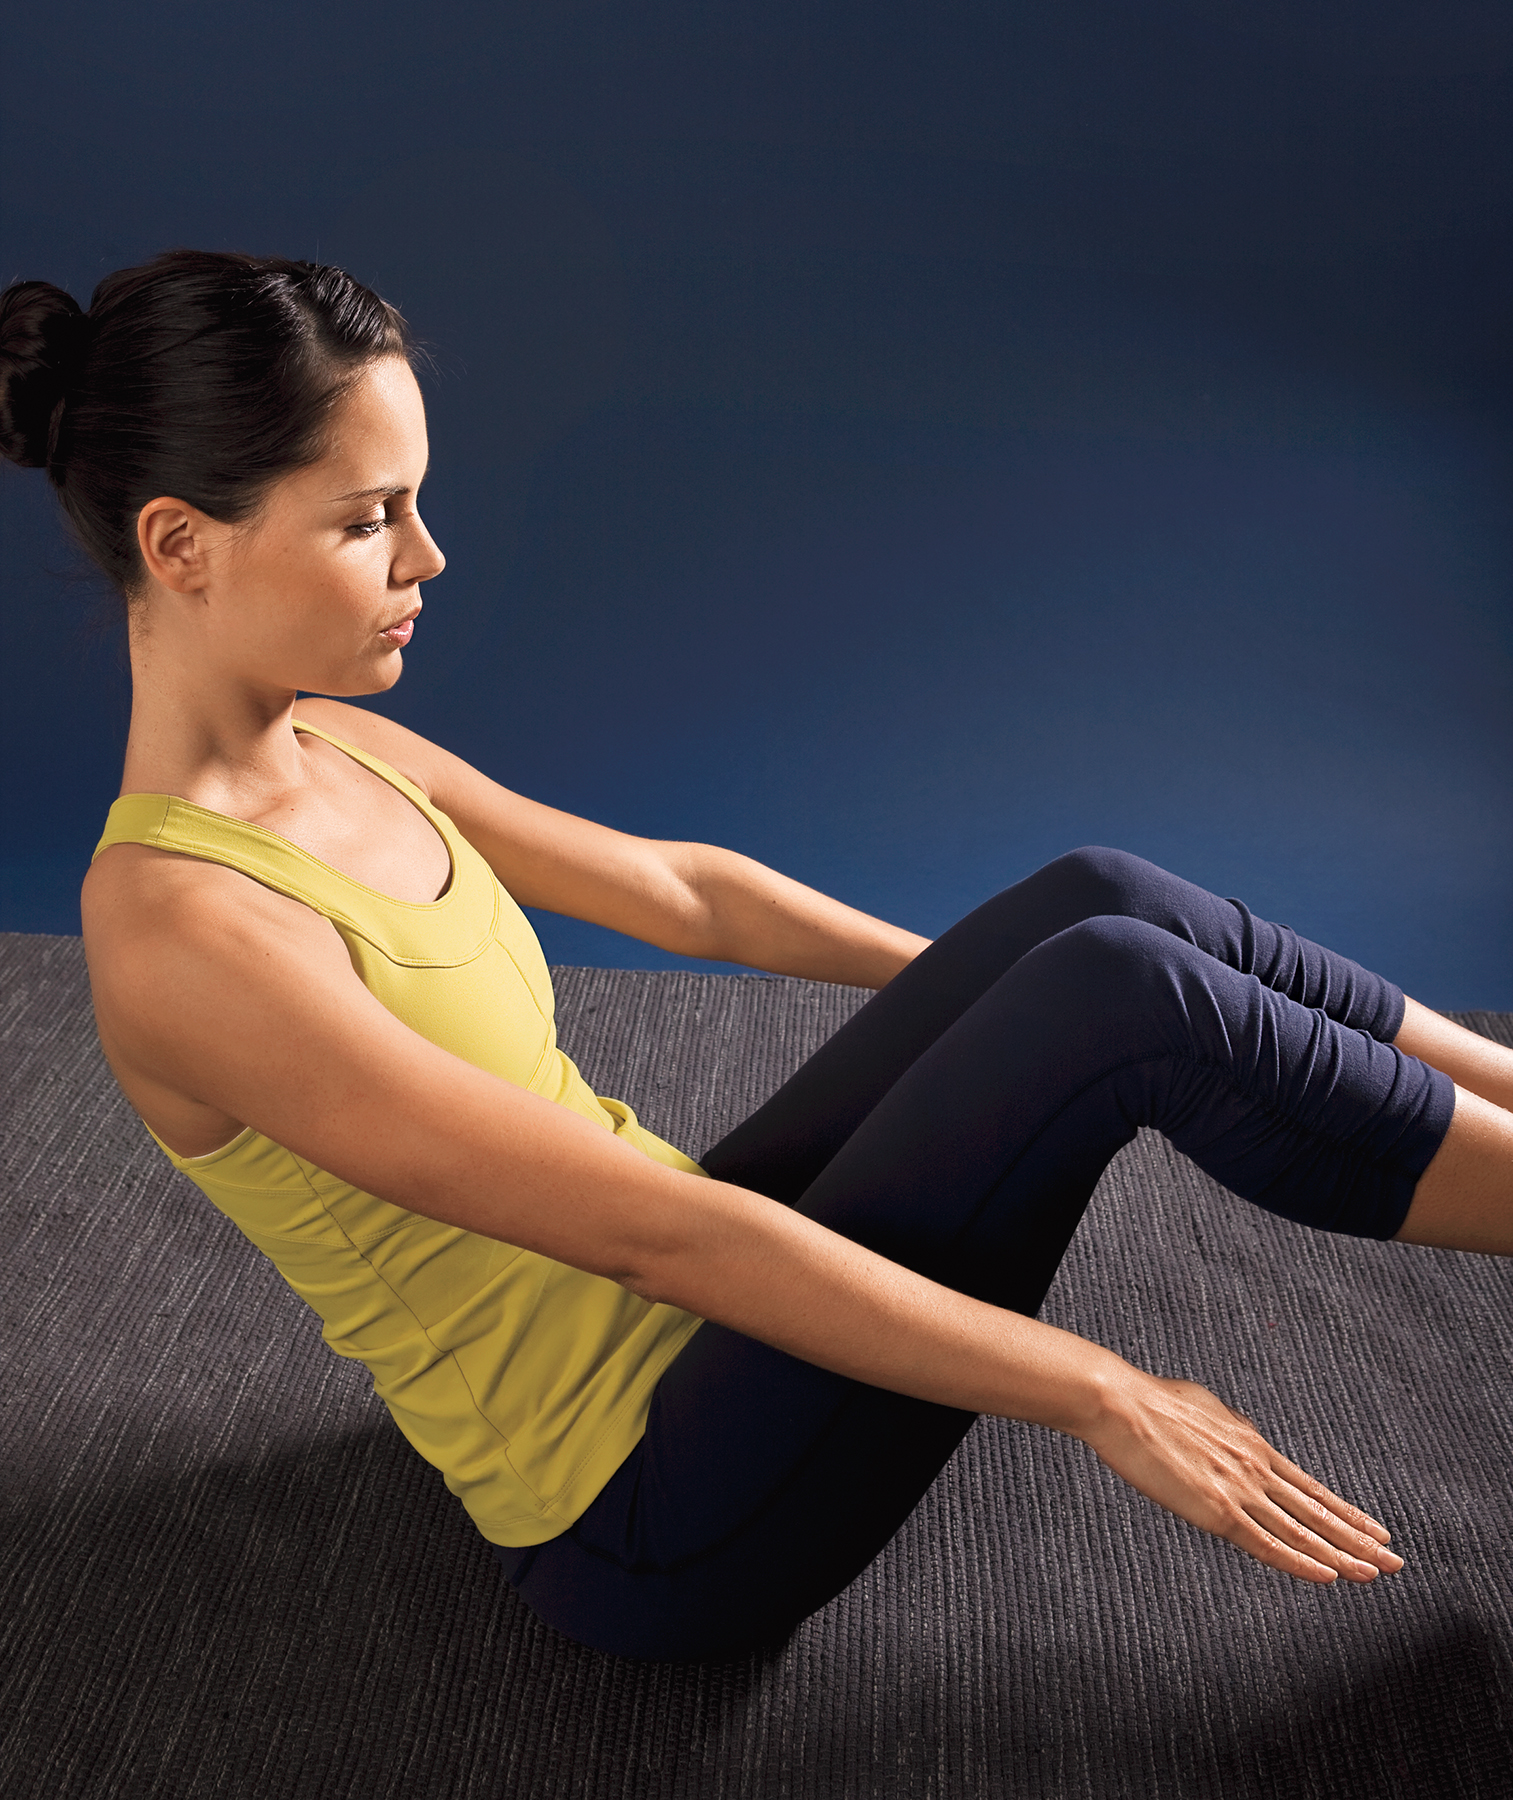 Model doing core workout